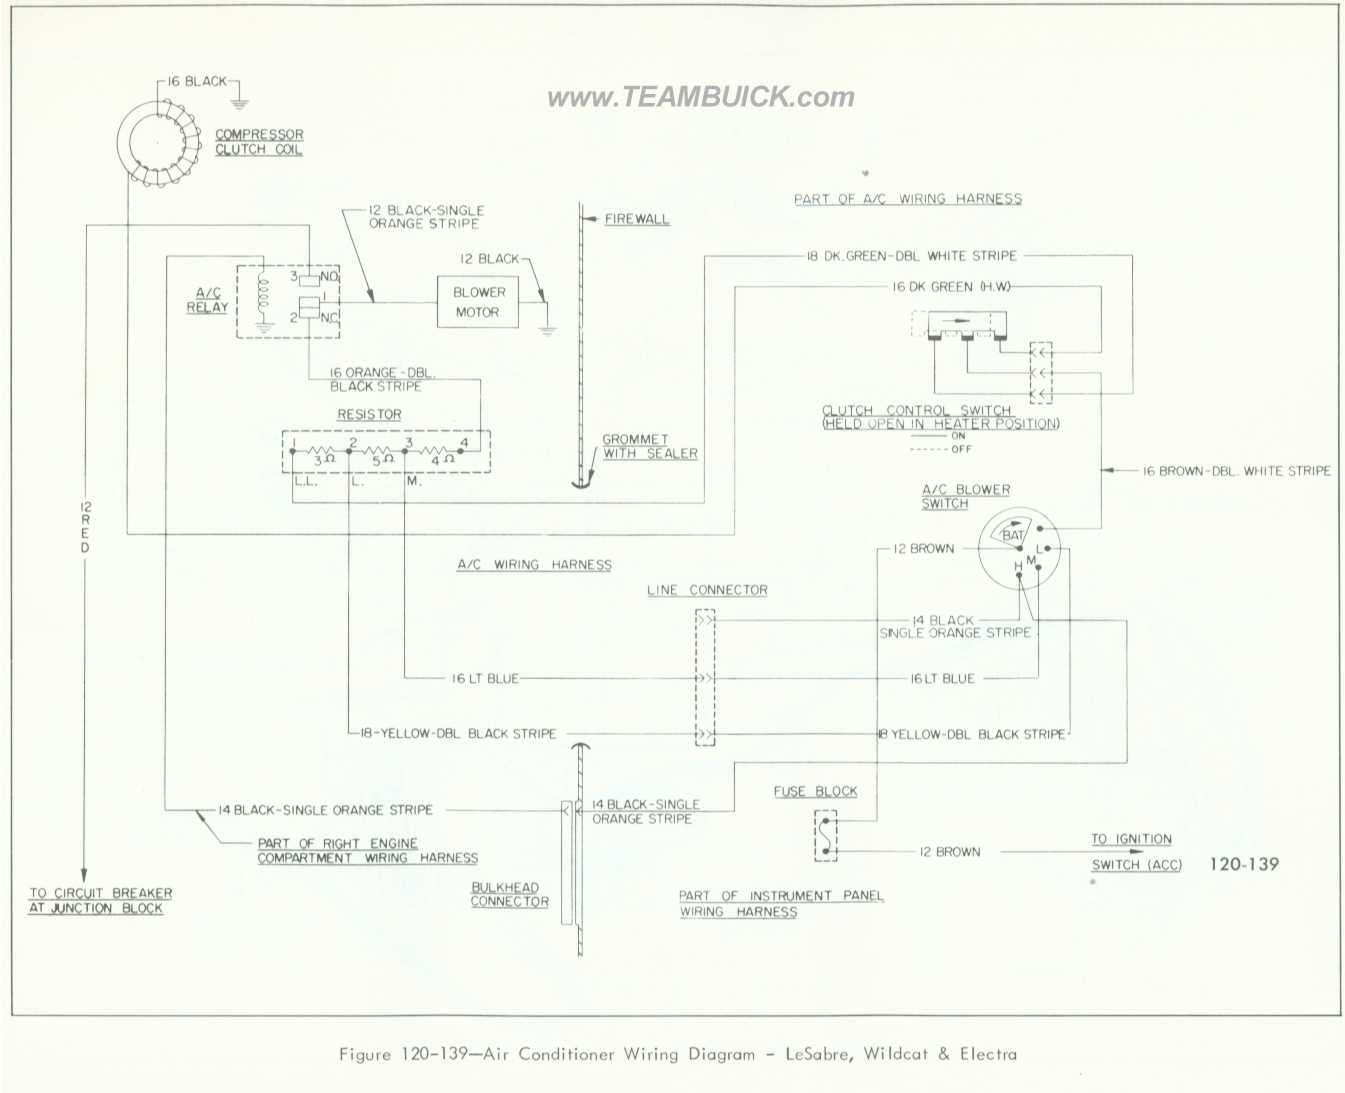 arcoaire furnace parts diagram hallmark furnace parts